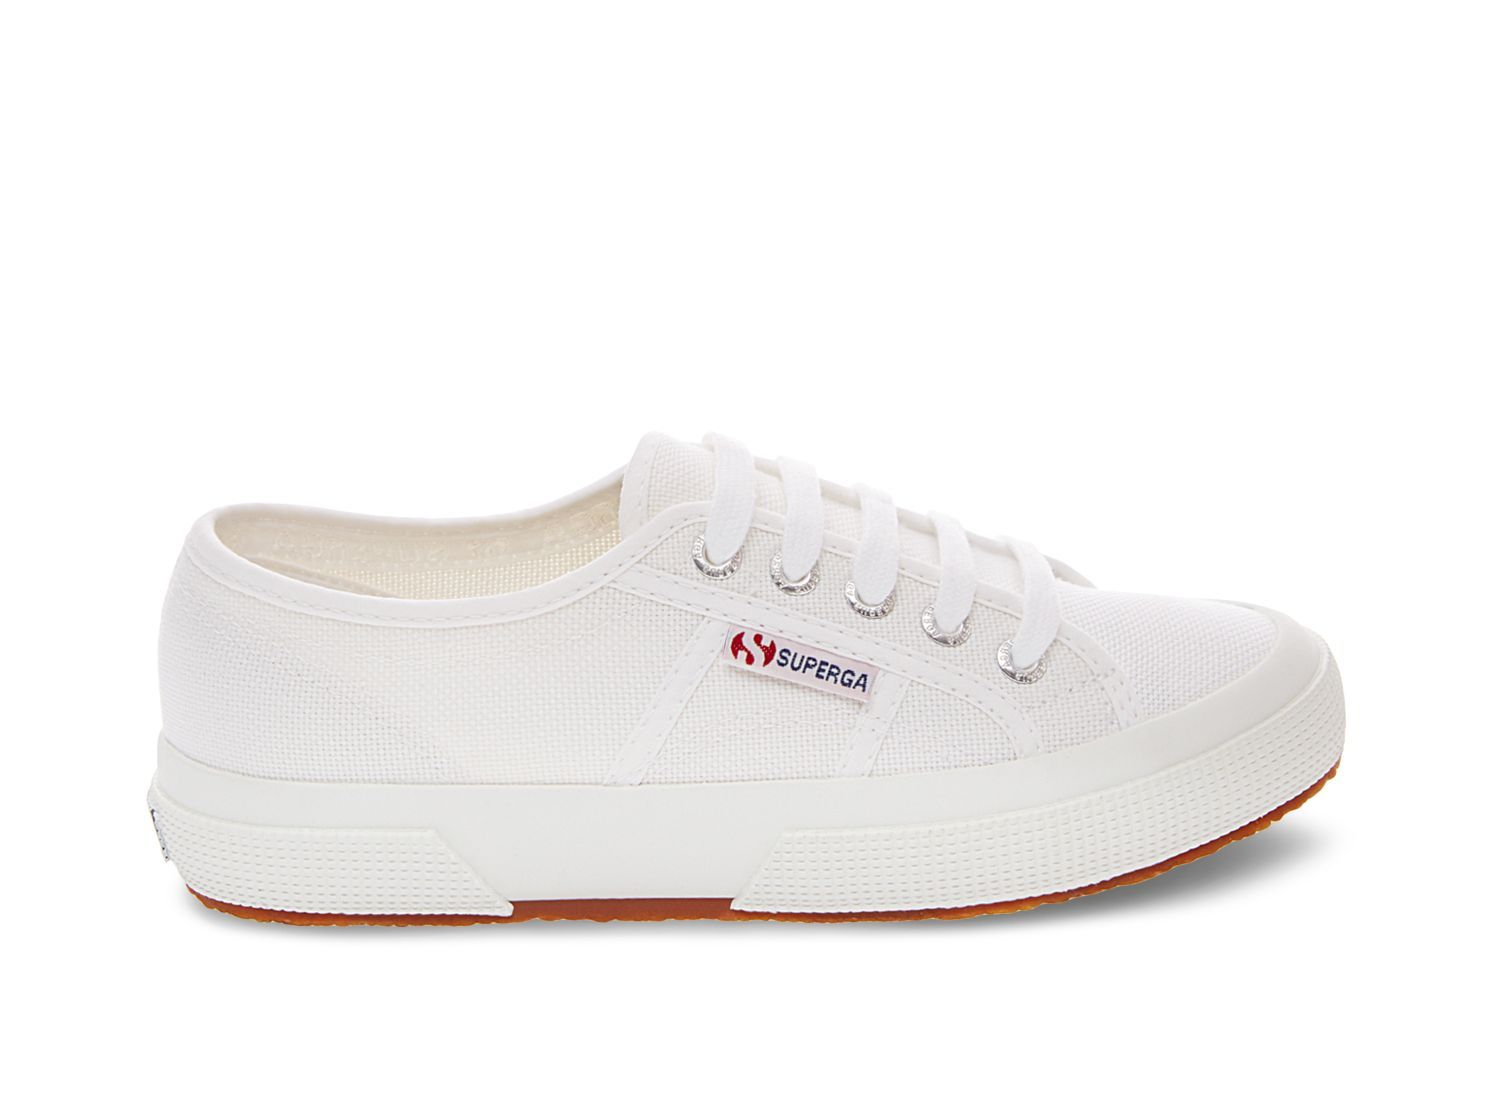 'Cotu' Sneaker by SUPERGA, available on nordstrom.com for $65 Emily Ratajkowski Shoes Exact Product